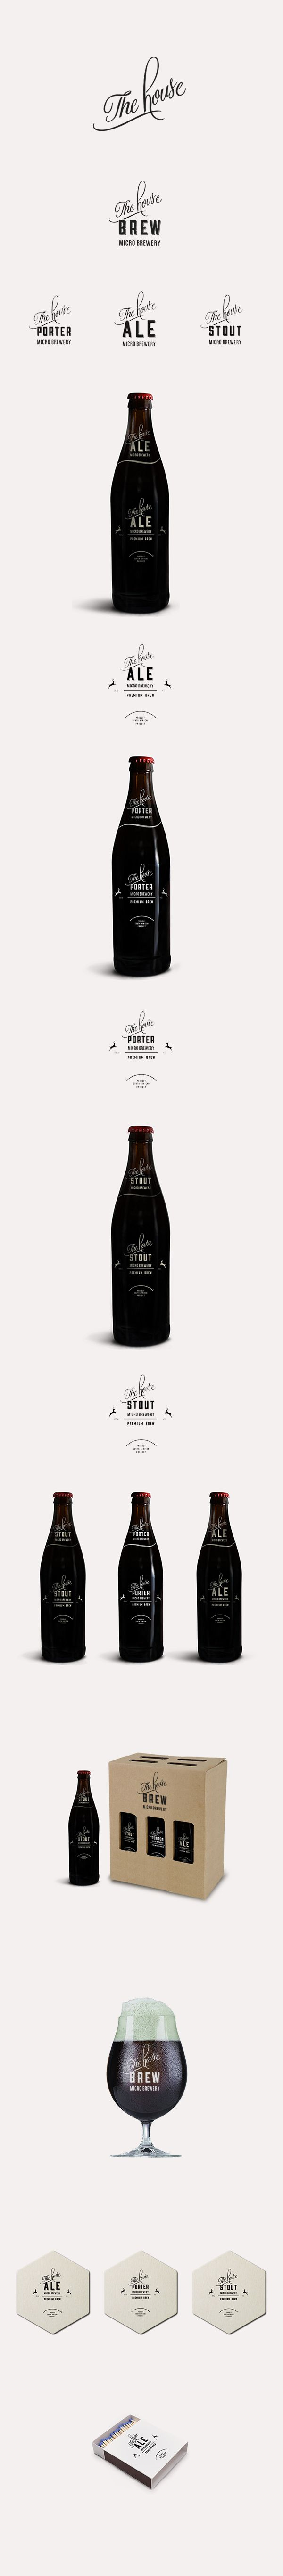 The House Brewery: CI Packaging design by Louwrens Venter #mxm #beer